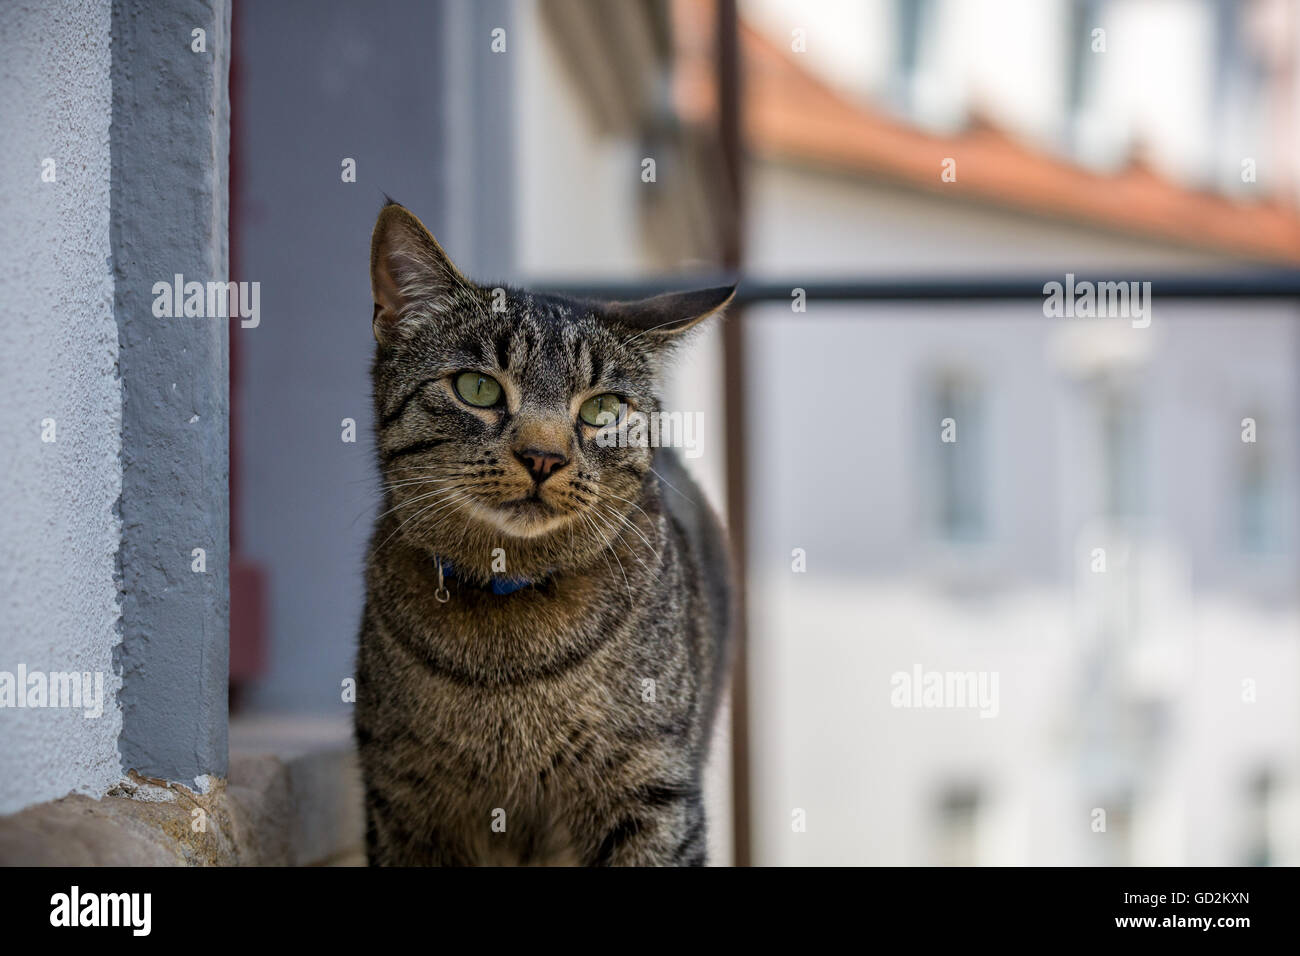 Pet cat on the streets - Stock Image